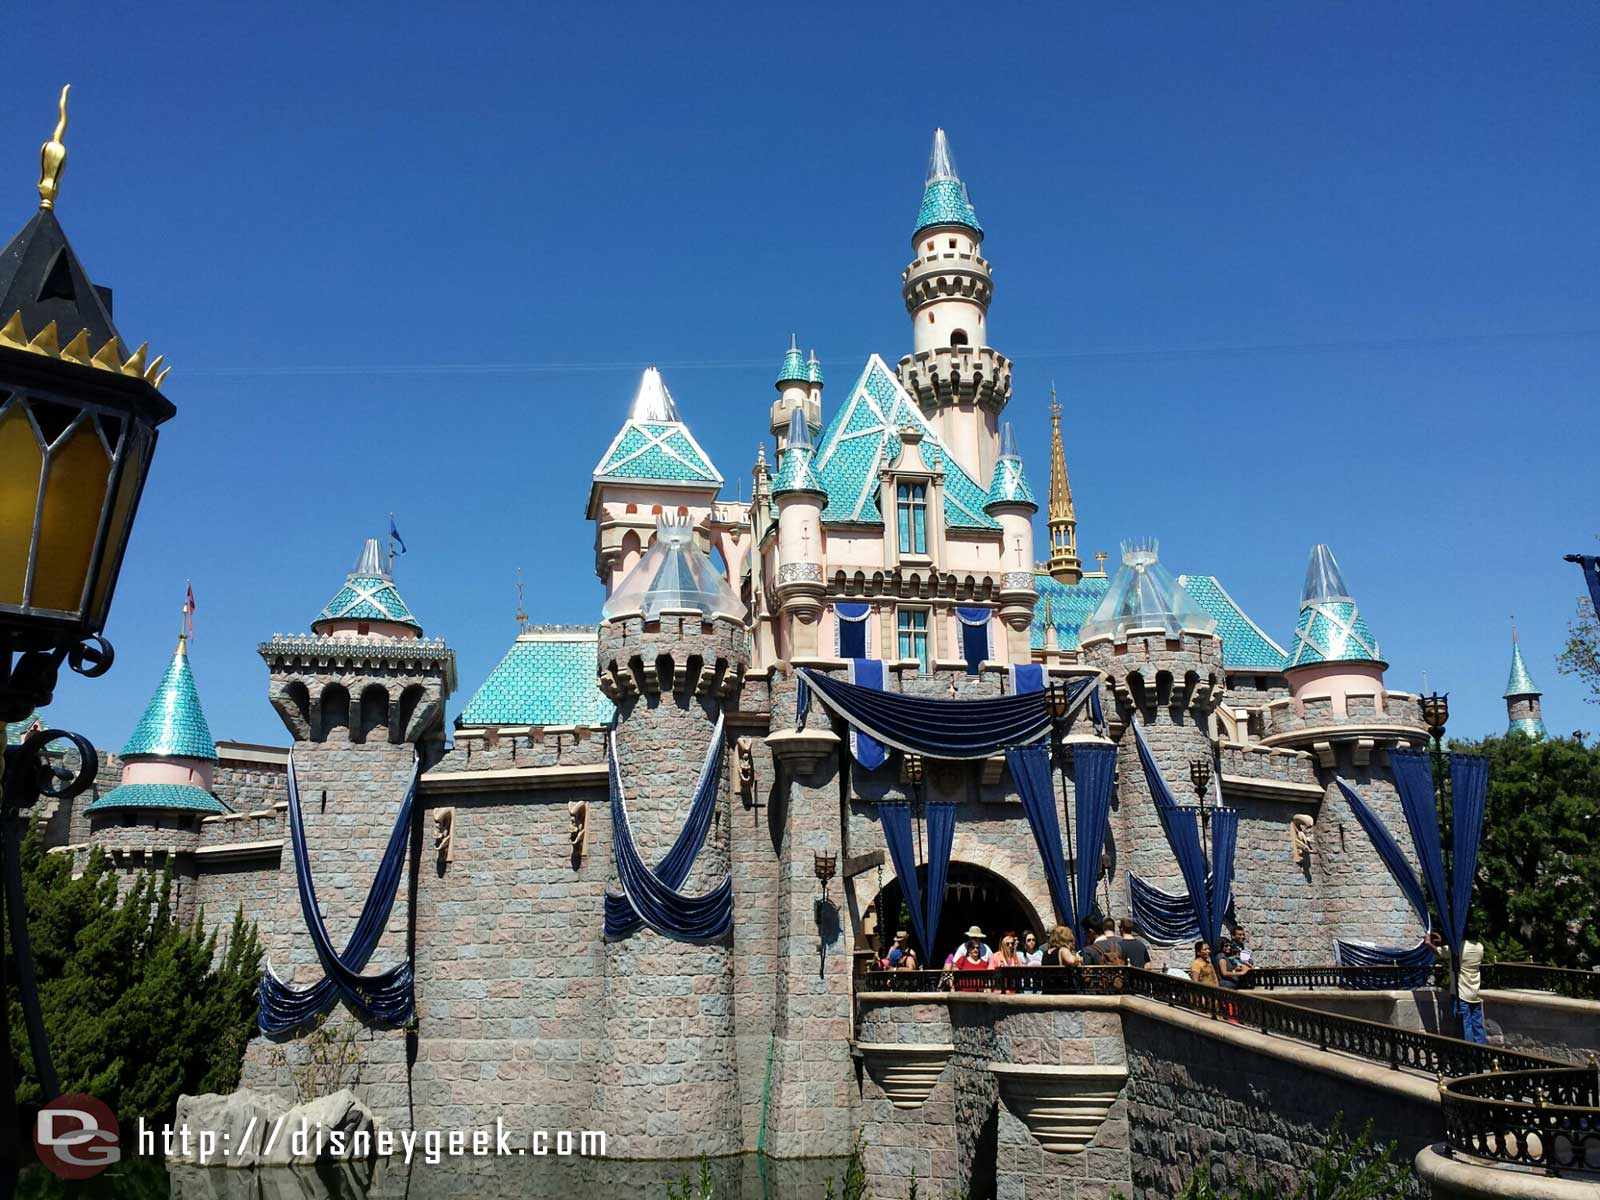 A closer look at Sleeping Beauty Castle & the current state of the #Disneyland60 overlay